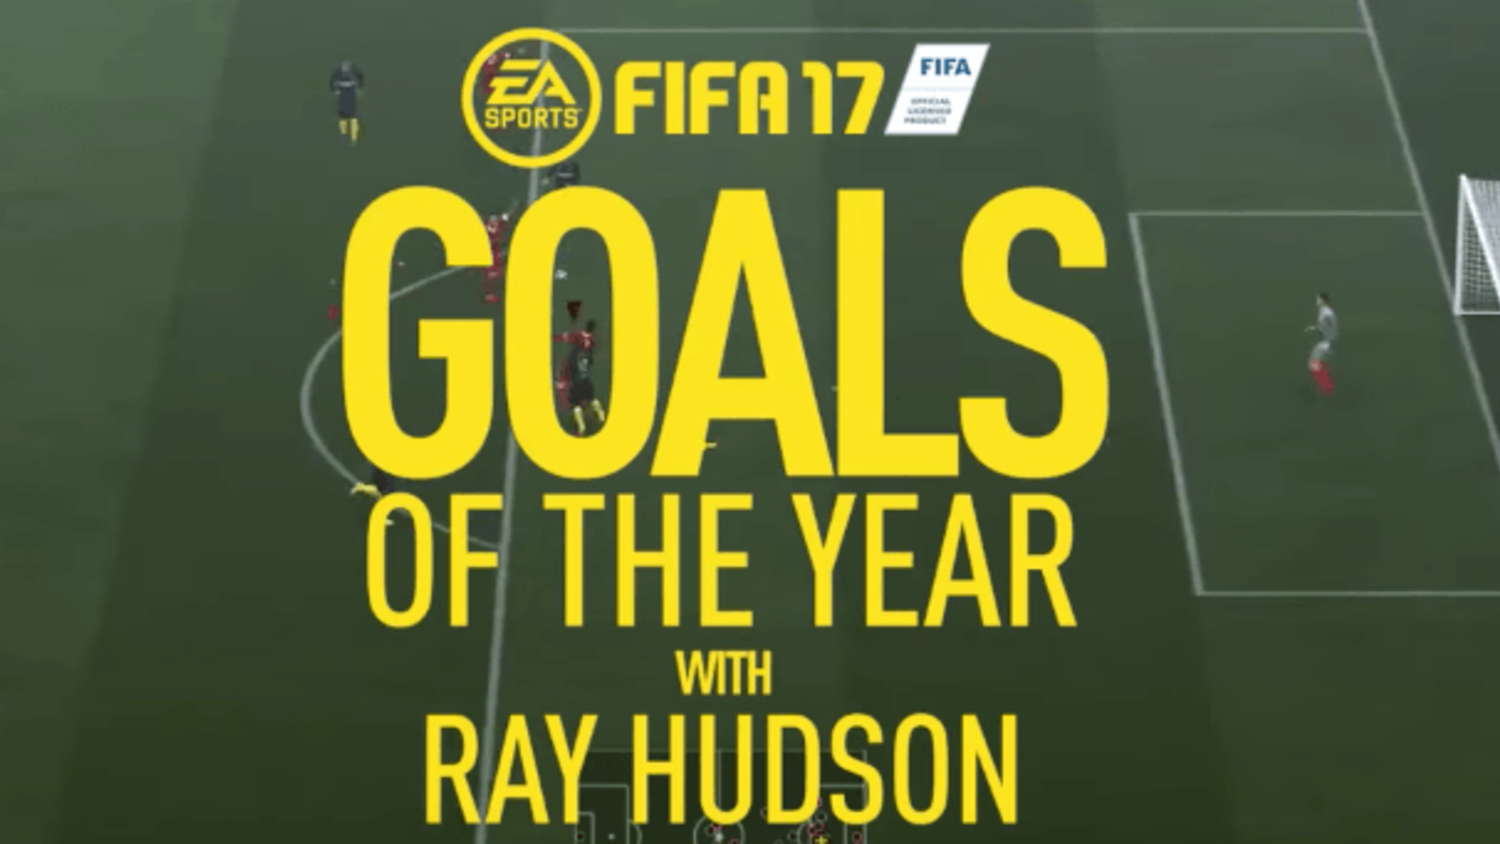 EA Sports release the FIFA 17 Goals of the Year